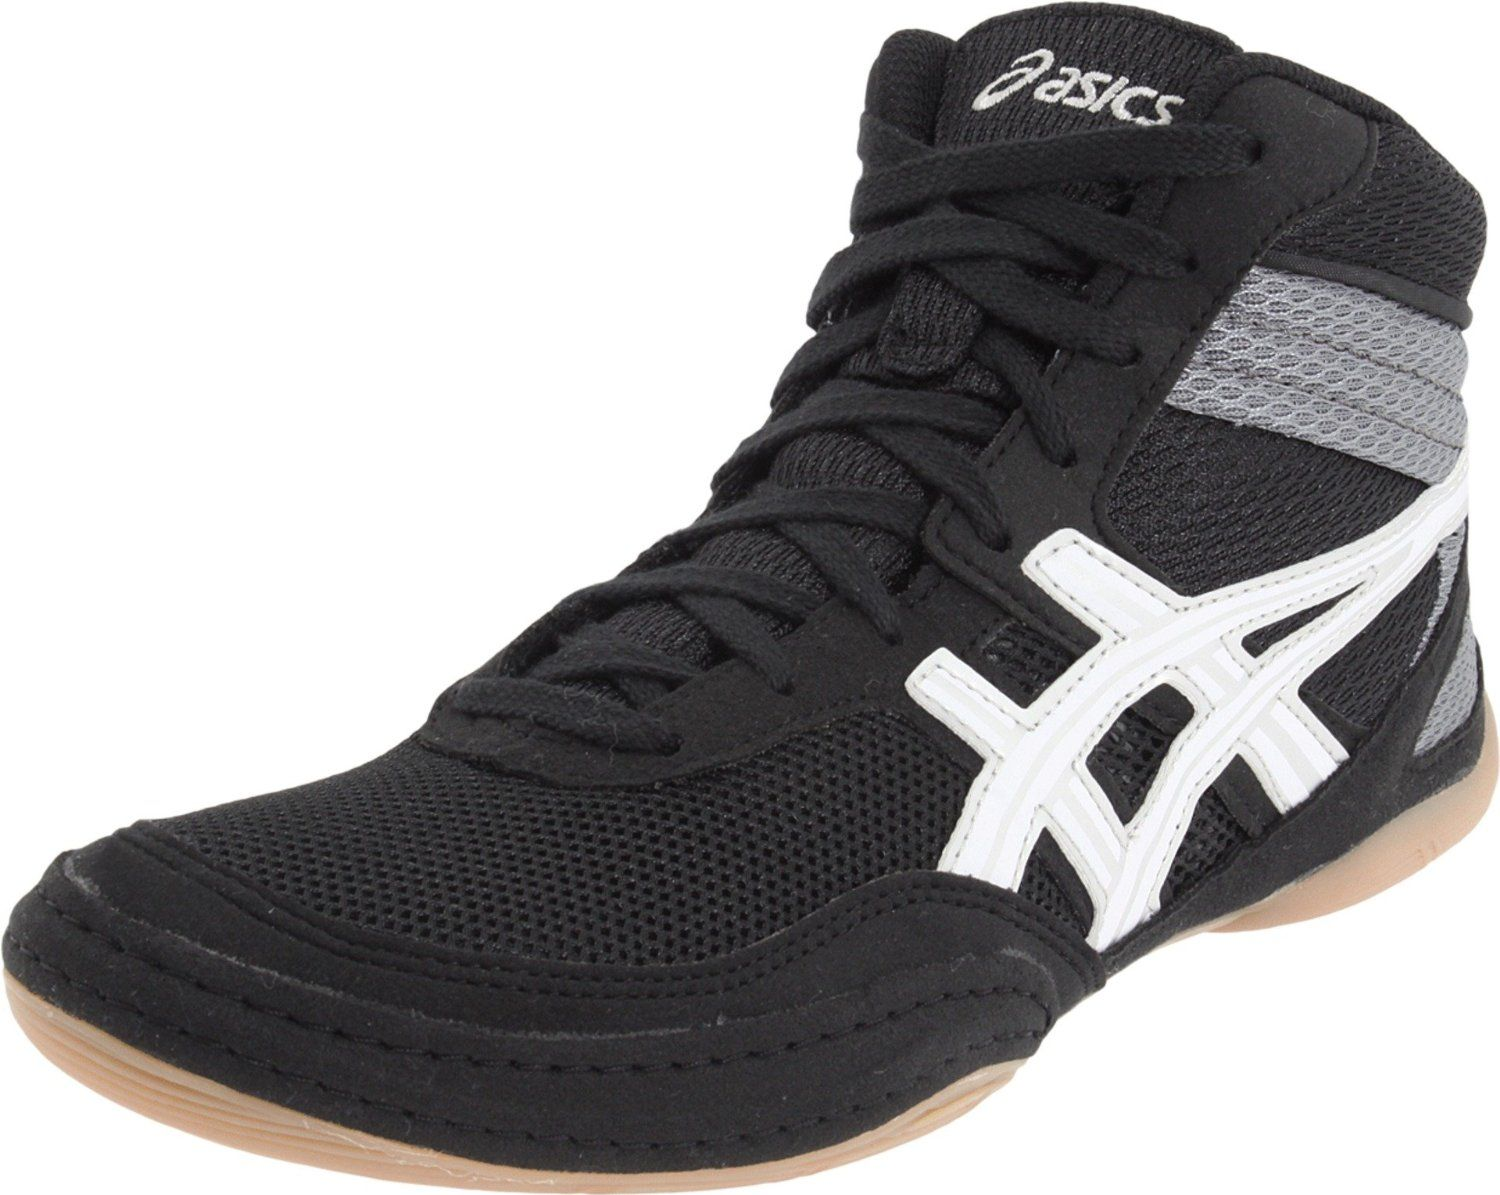 Shop Uk Asics Mens Gel-Matflex 3 Wrestling Shoes